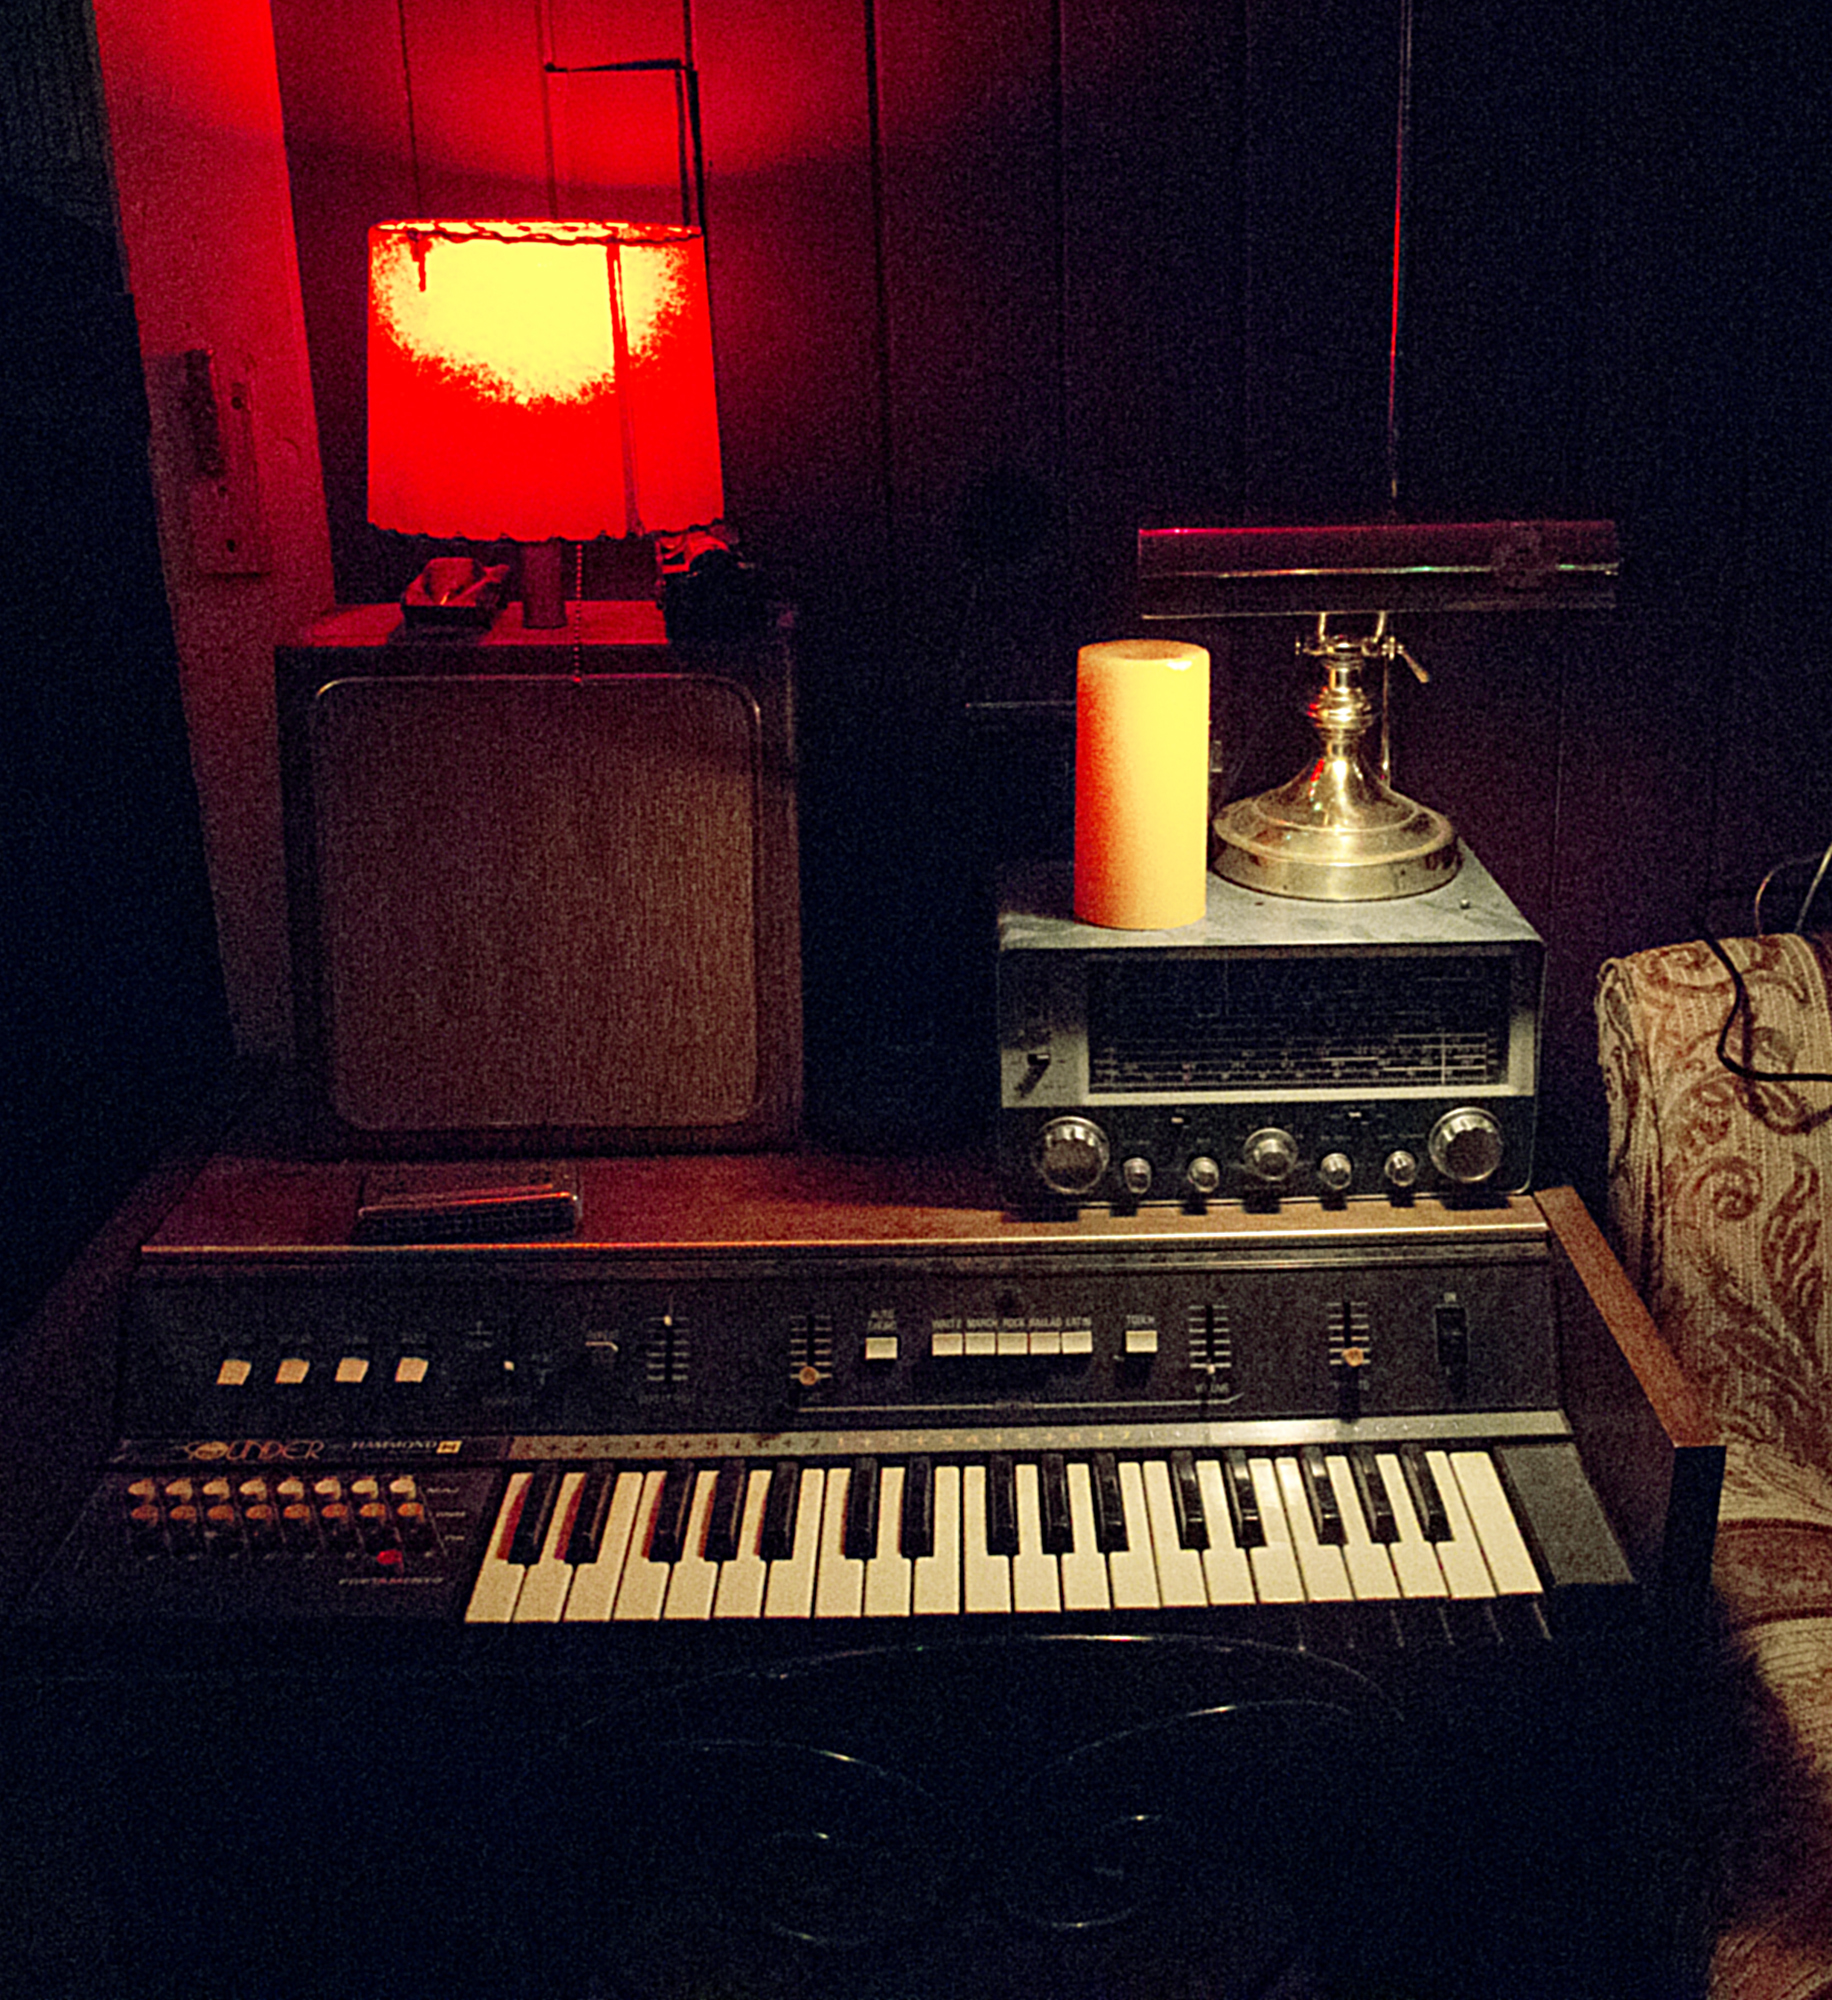 2016_02_23 Paul's studio - organ 2000 IMG_3757.jpg